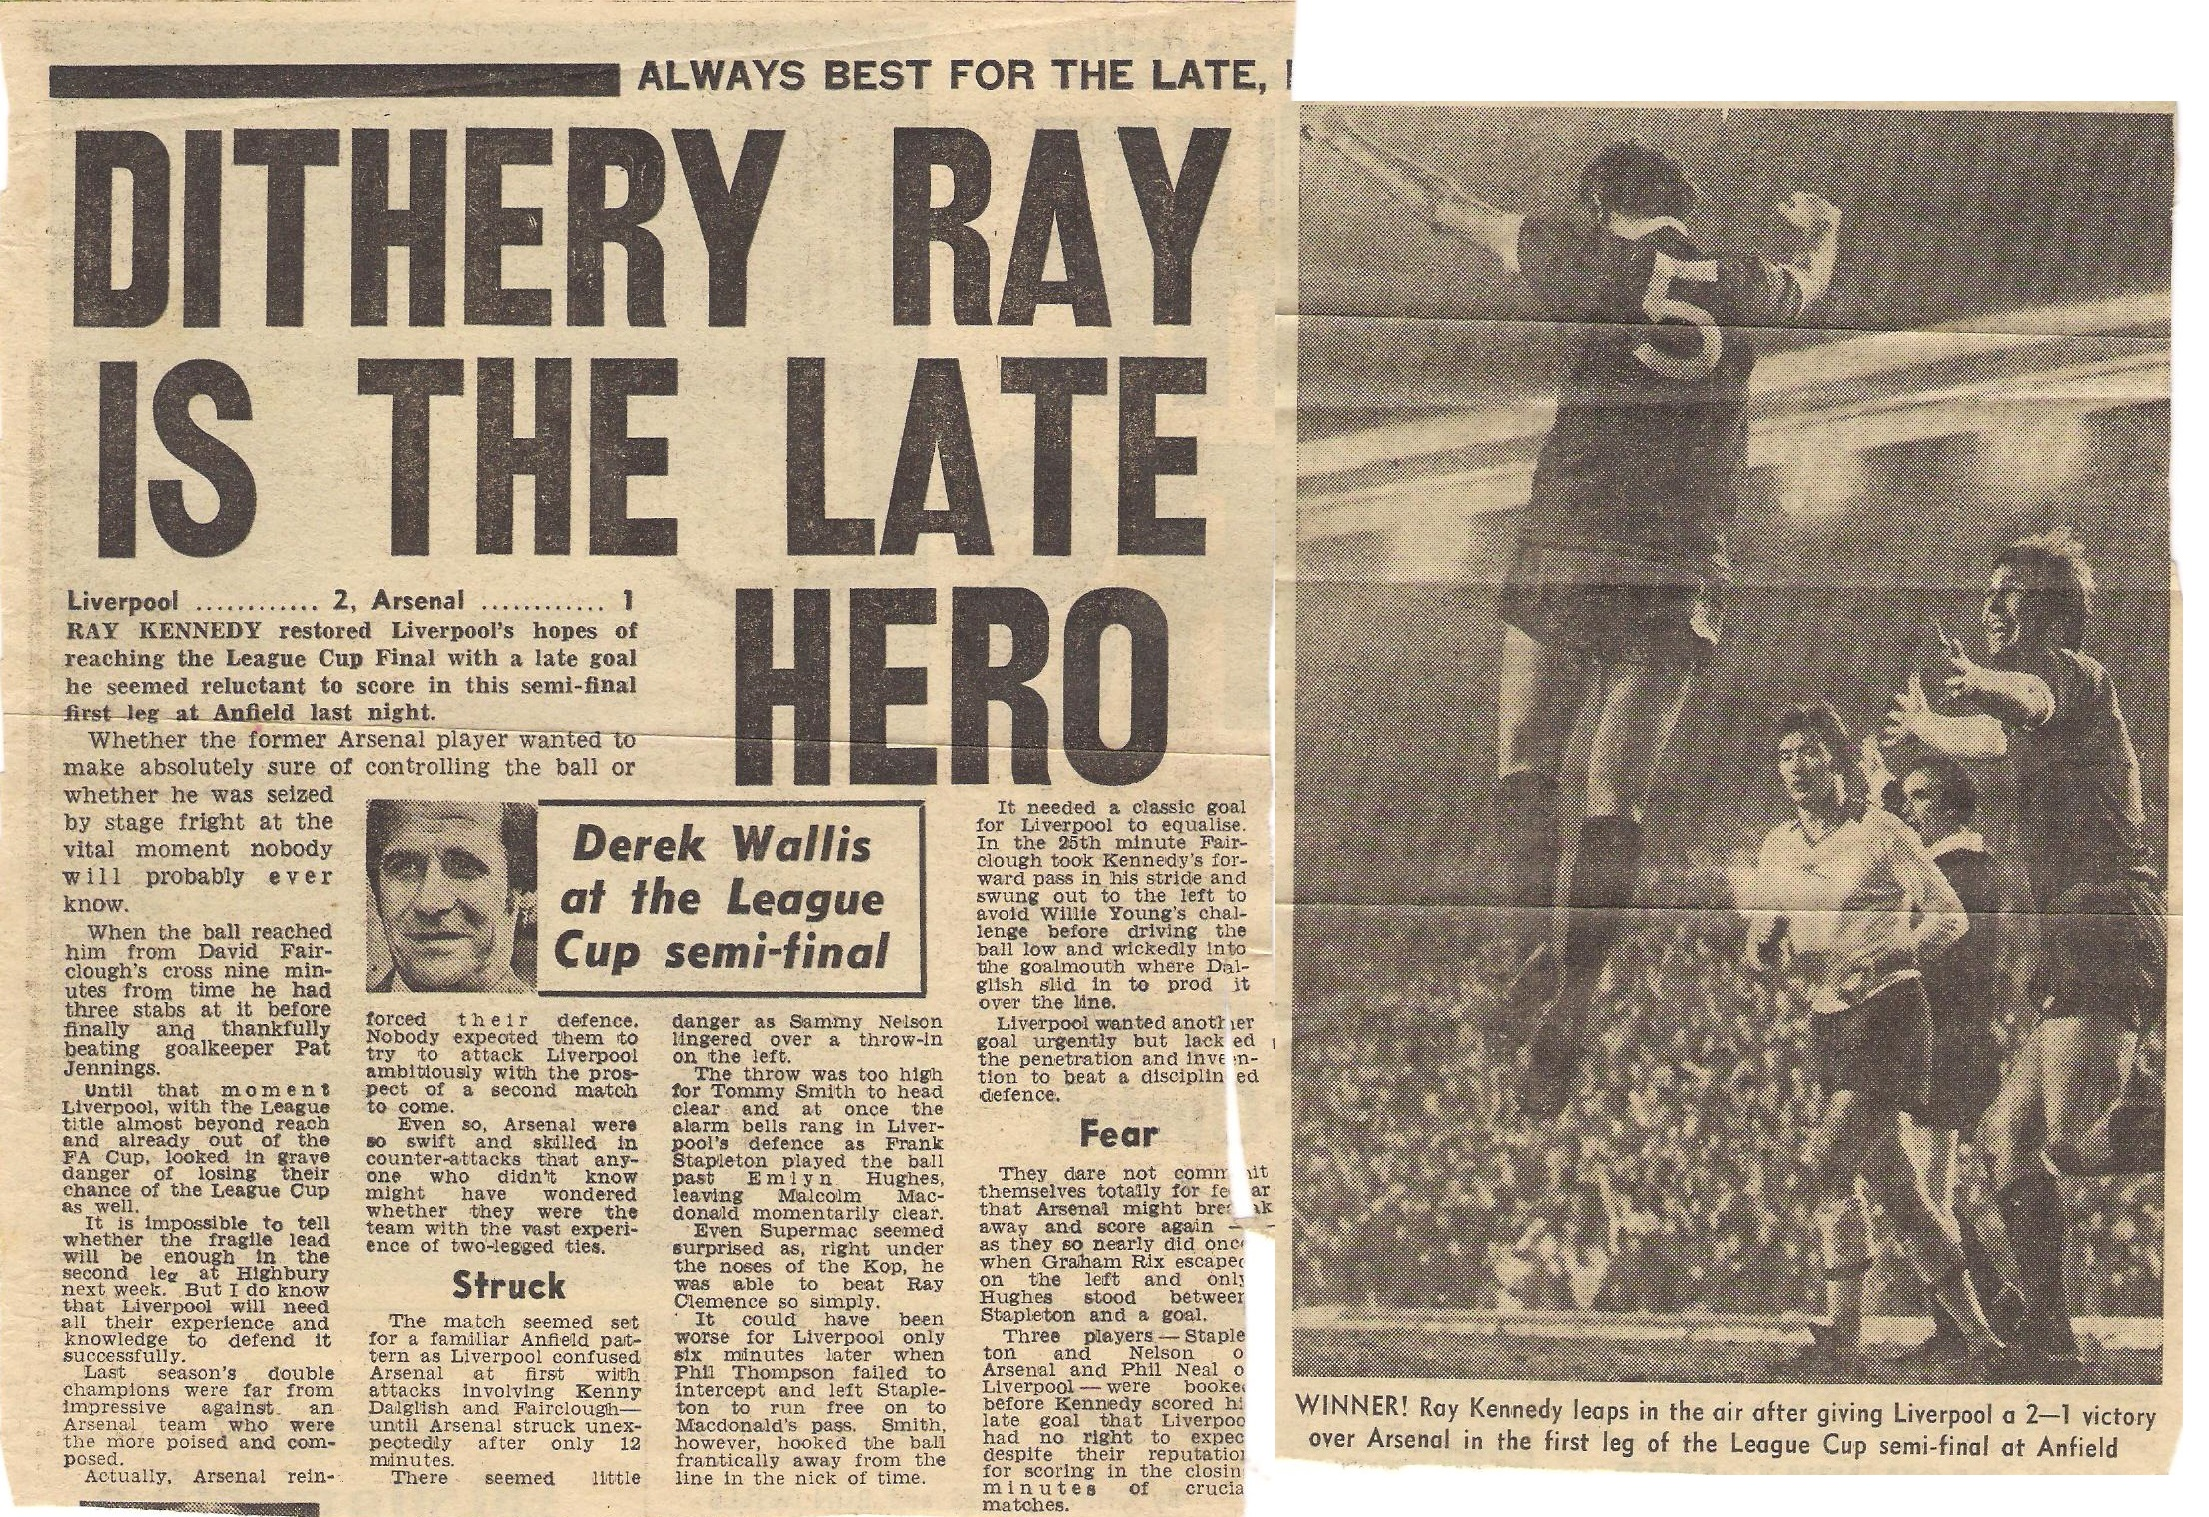 Dithery Ray is the late hero - 7 February 1978